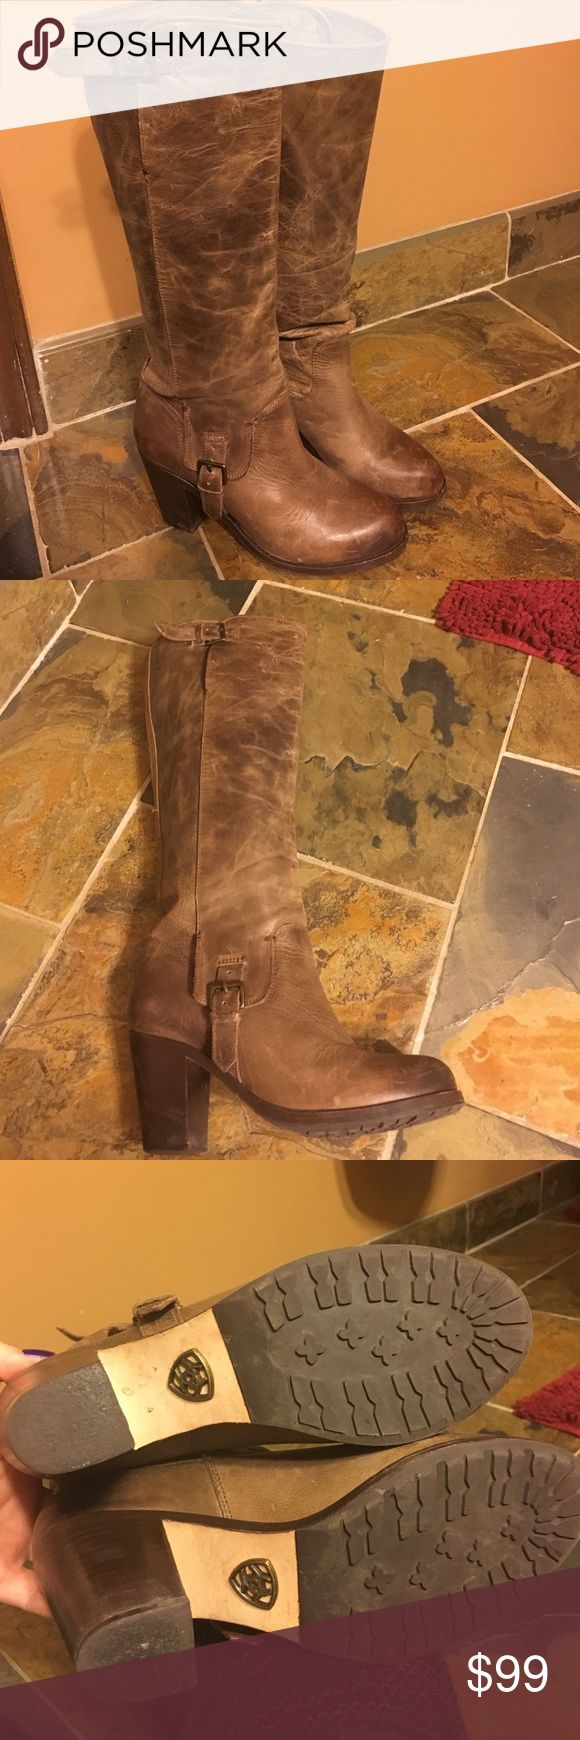 Ariat Gold Coast tall  Boots Beautiful like new light brown tall leather Ariat Gold Coast boot. Buckle detailing on the outside part of boot. Ariat Shoes Heeled Boots